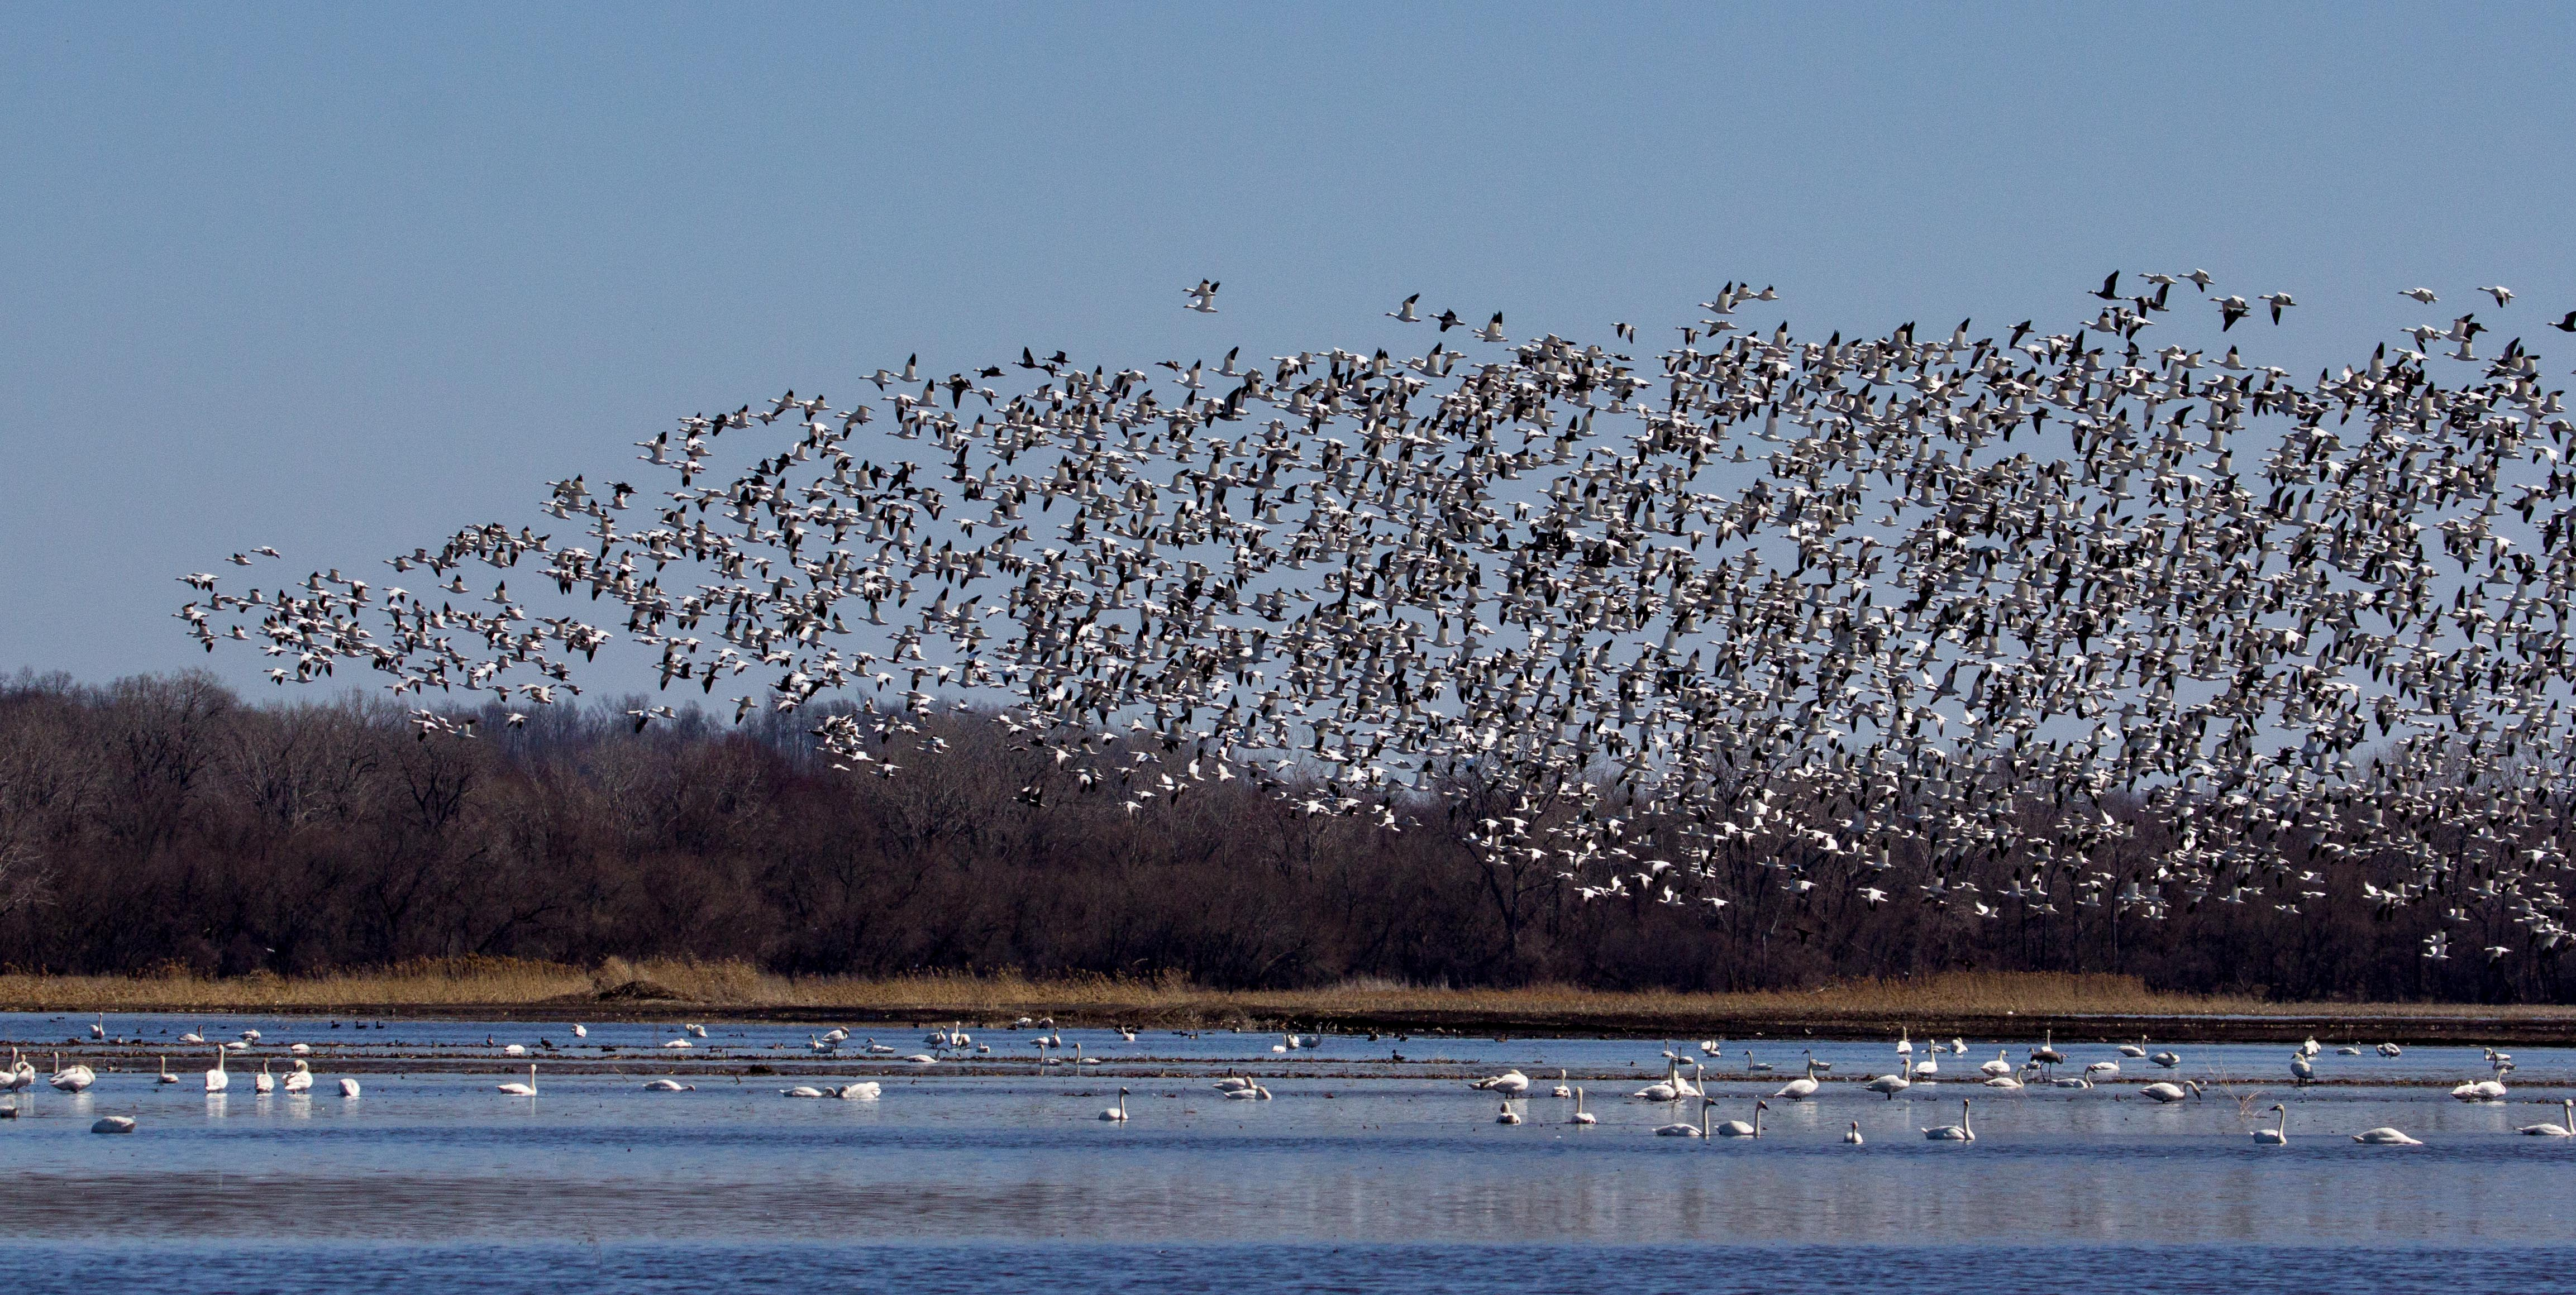 Snow Geese. Esther Kowal-Bukata. Copyright, 2014. All rights reserved.